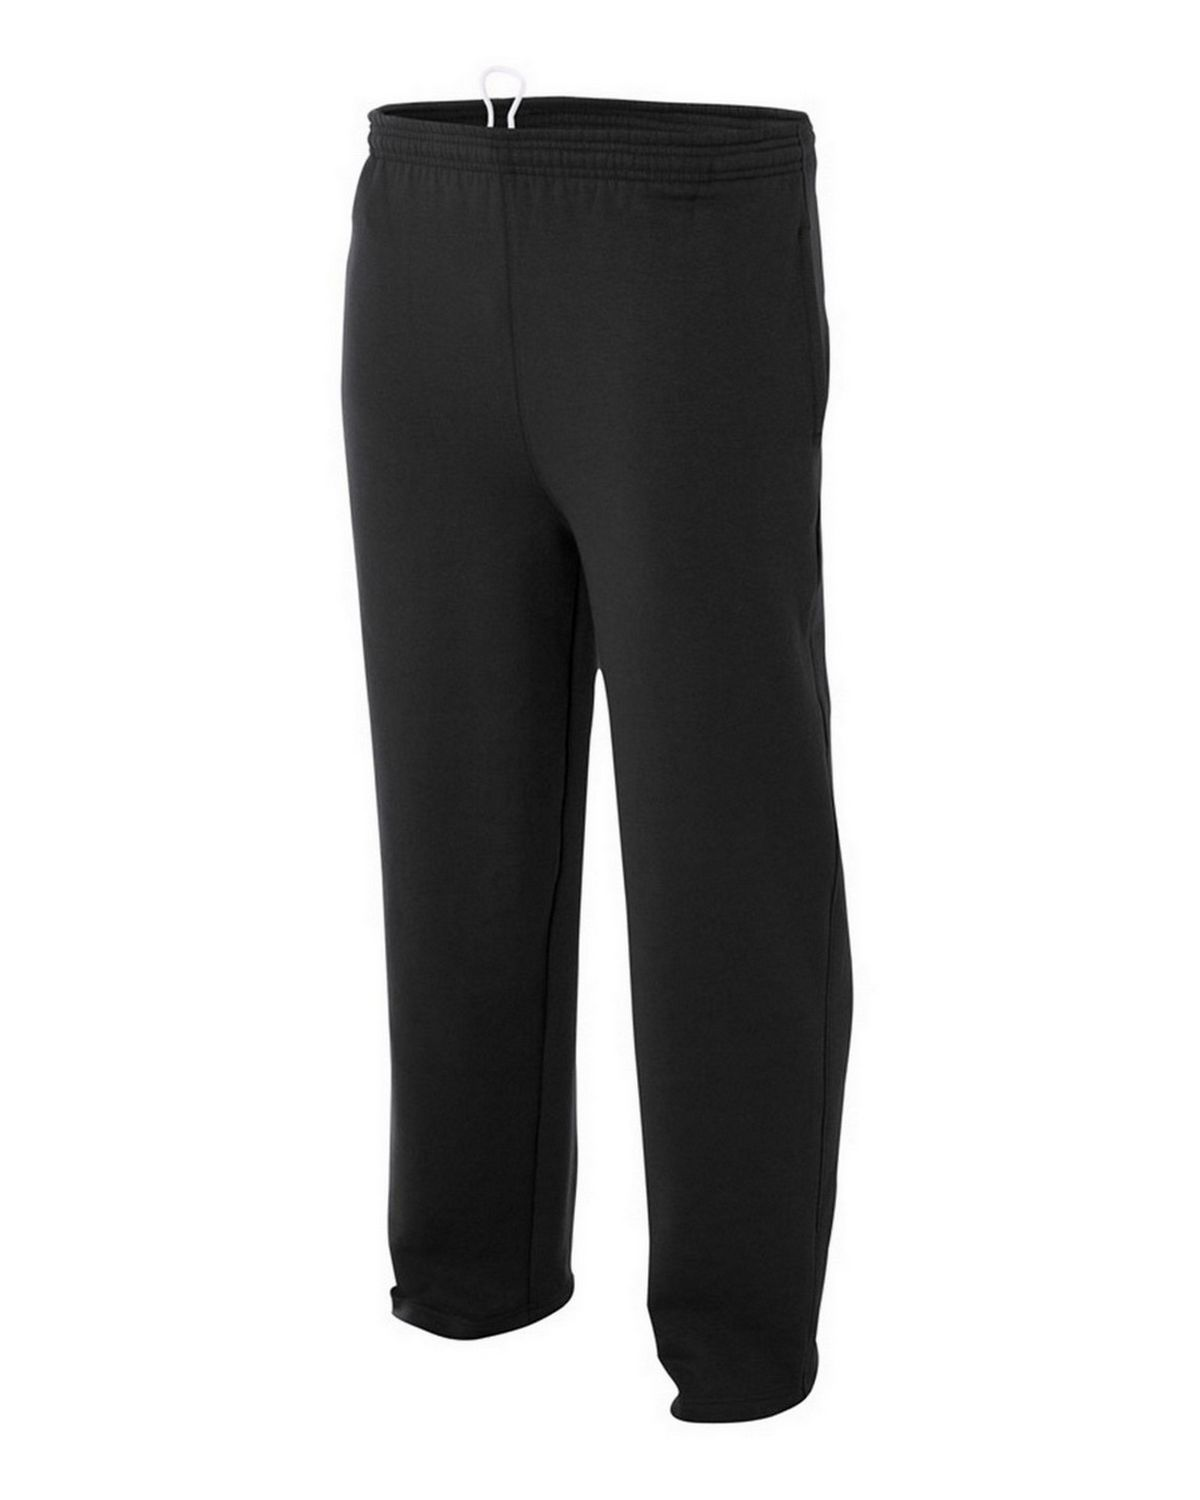 A4 N6193 Adult Tech Fleece Pants - Black - XL N6193